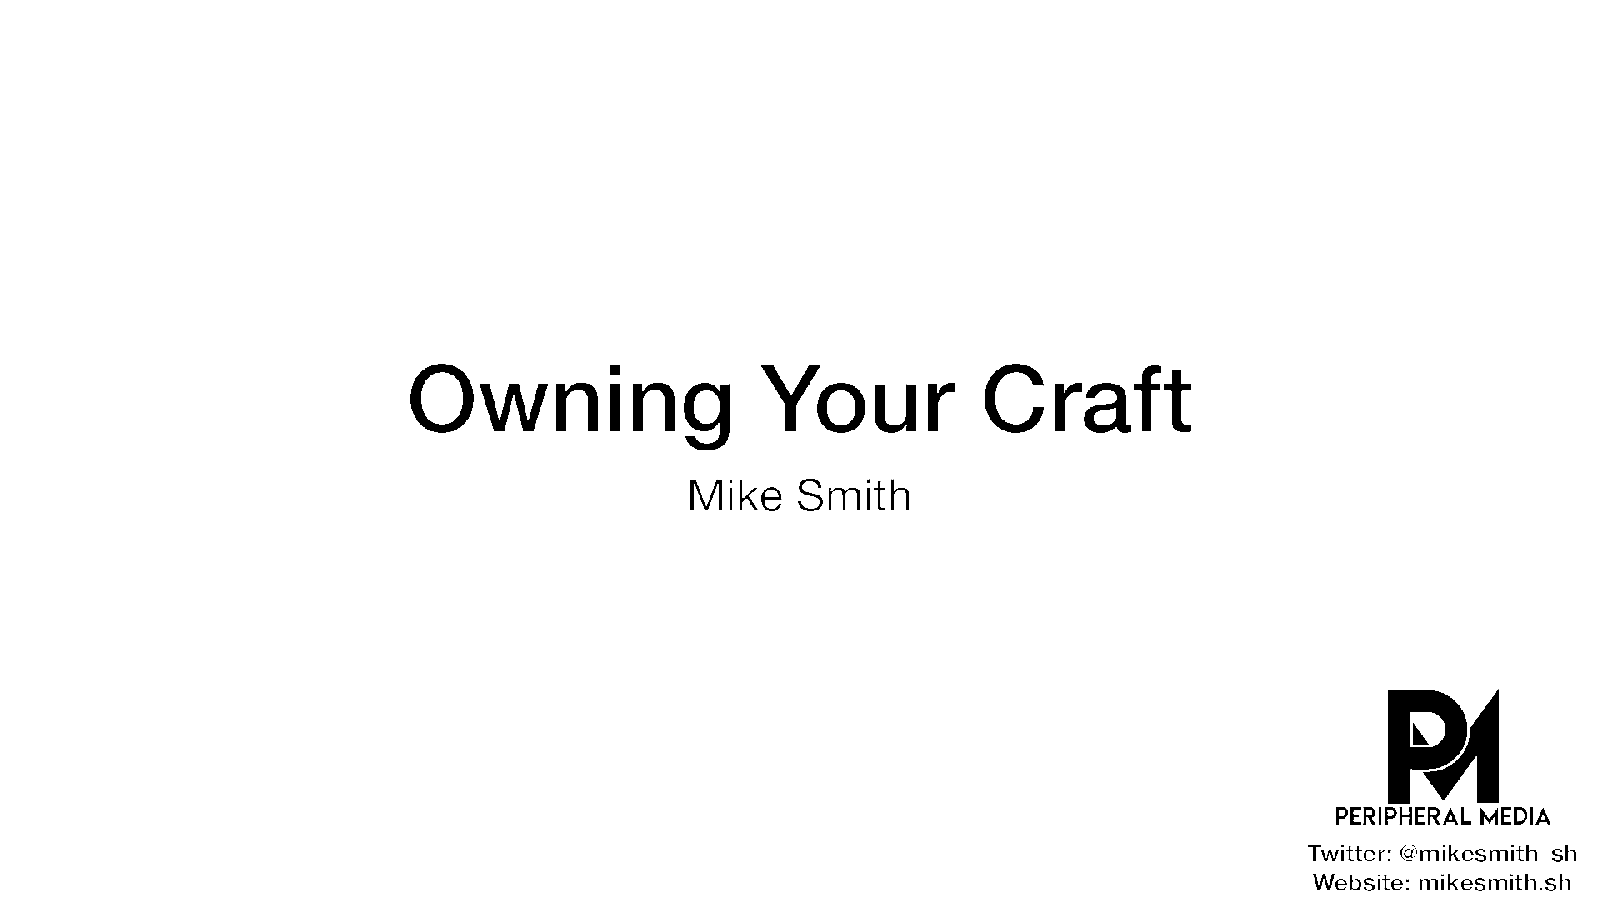 Owning Your Craft